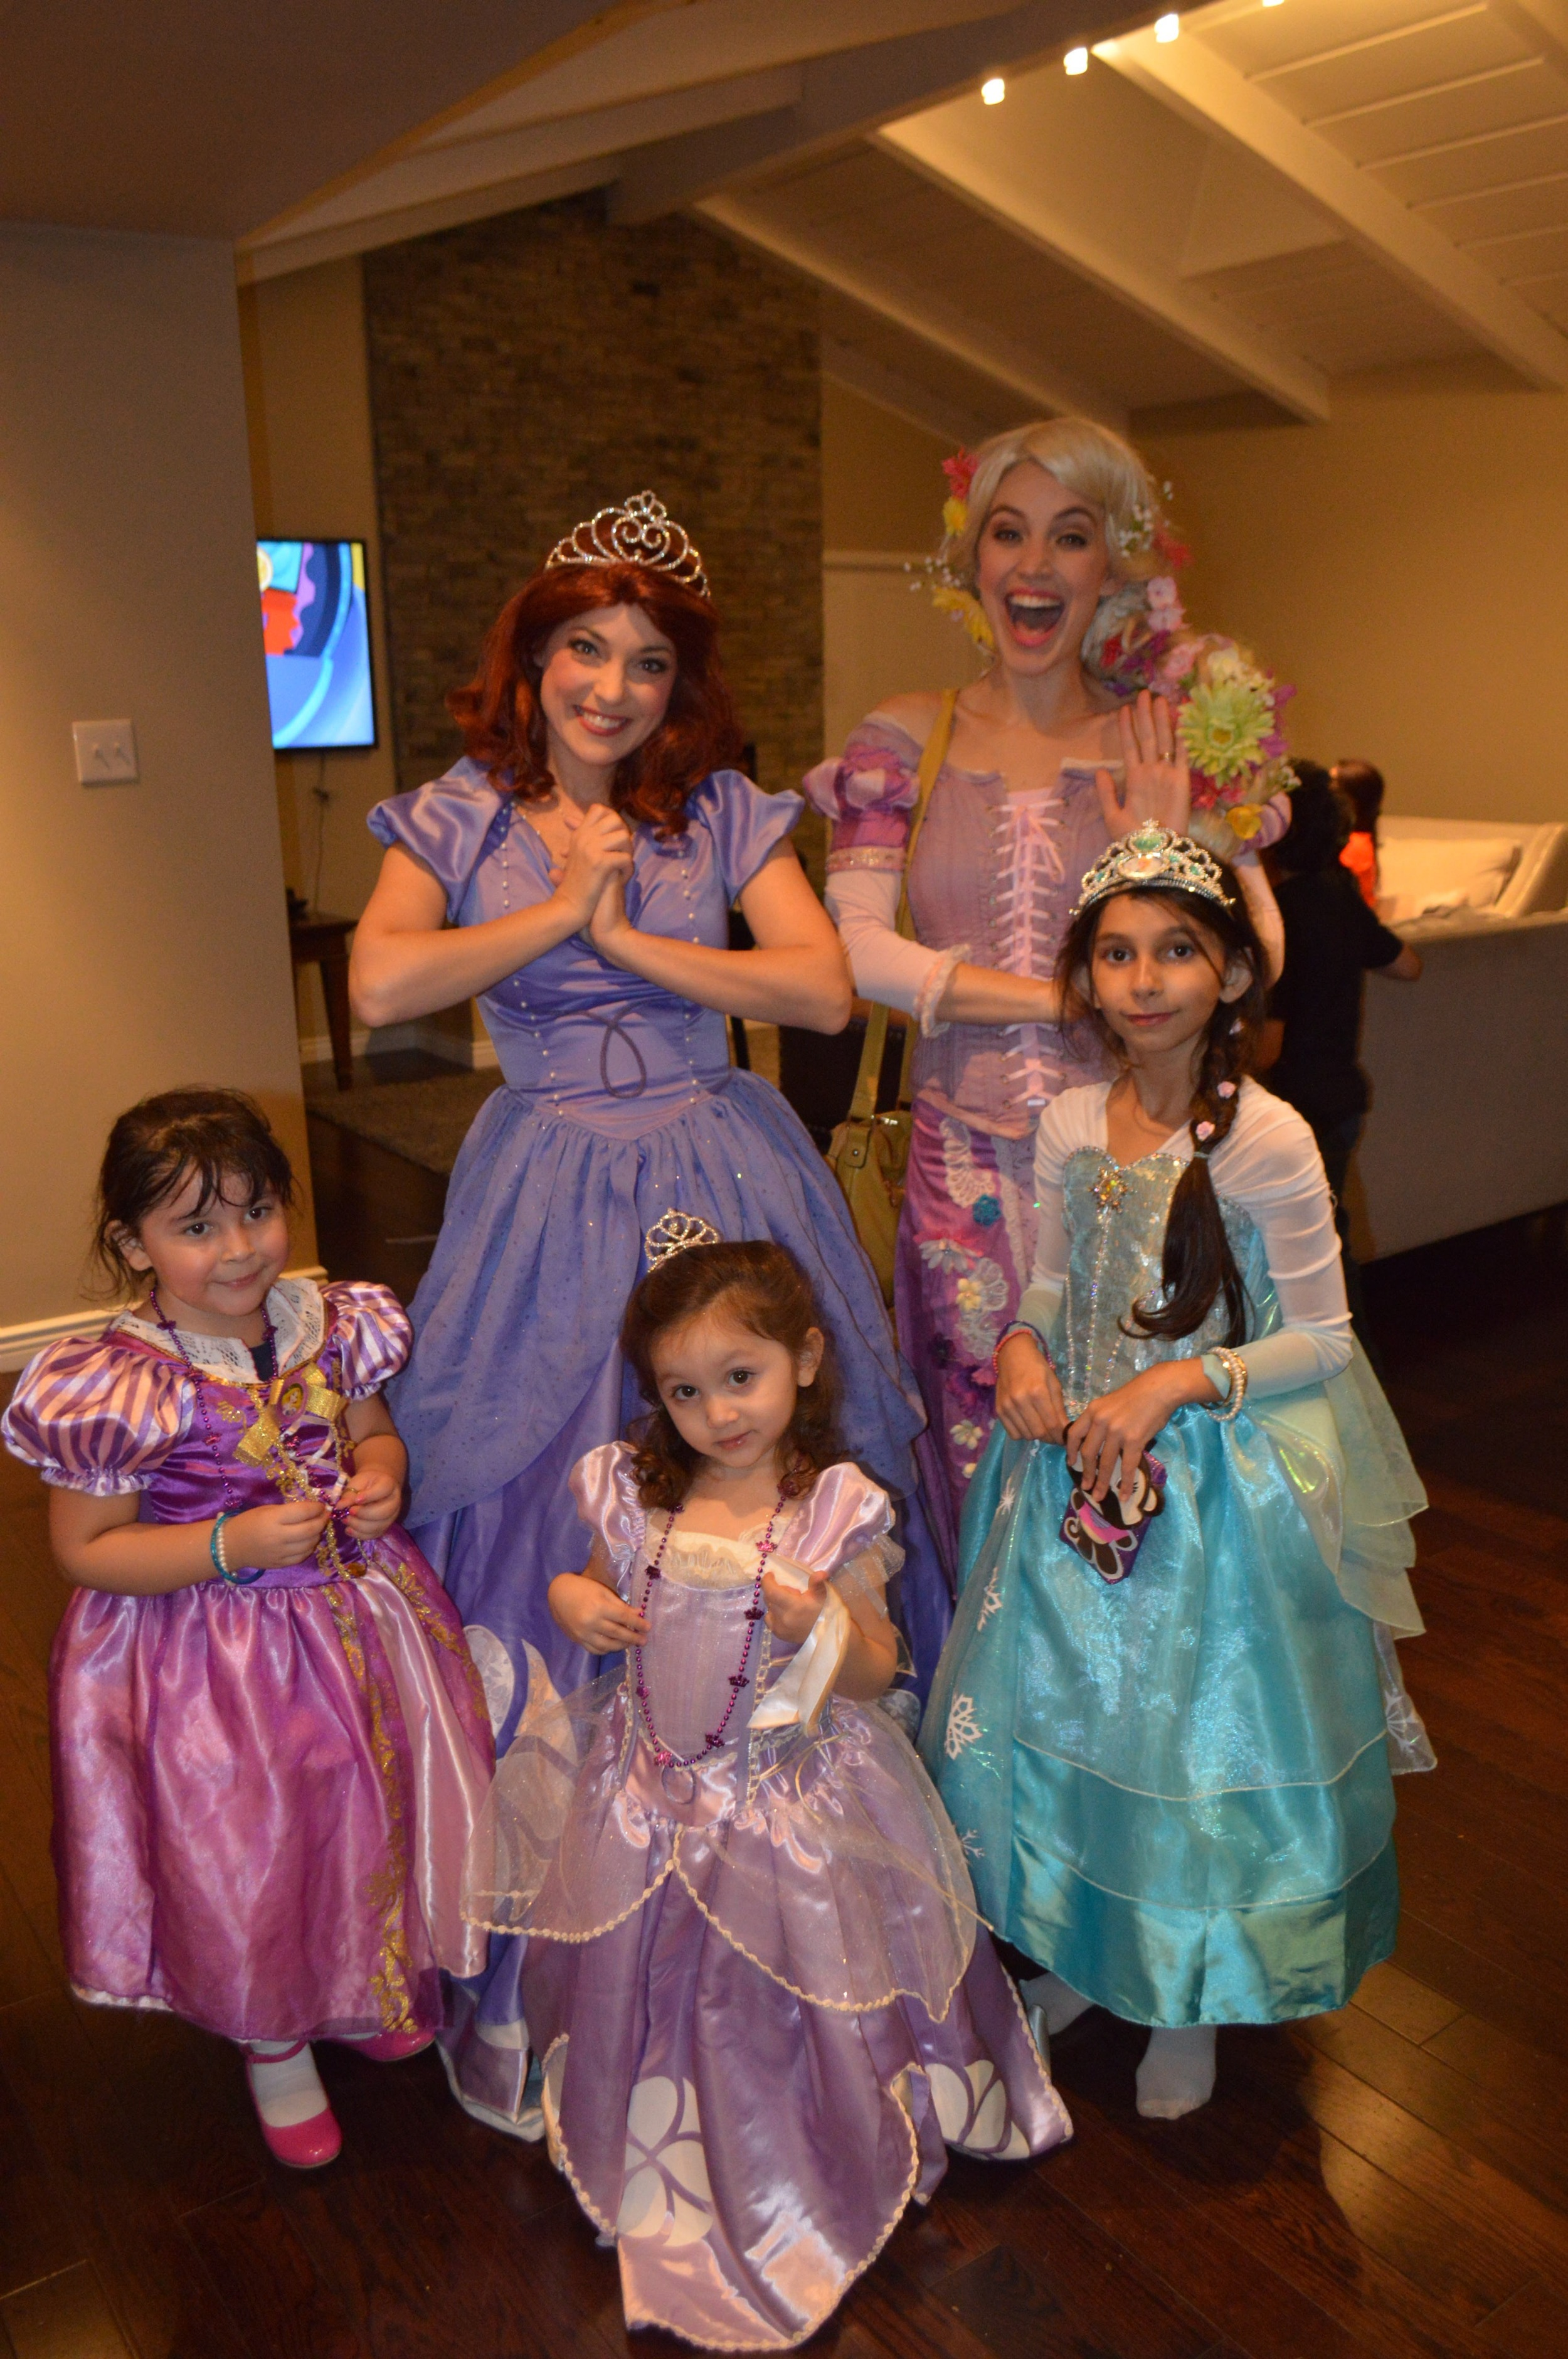 Sofia the first was the birthday girl's favorite princess and she was full of smiles all day! Sofia even joined the girls in the bounce house. Sofia provided by  Wishing Well Entertainment .